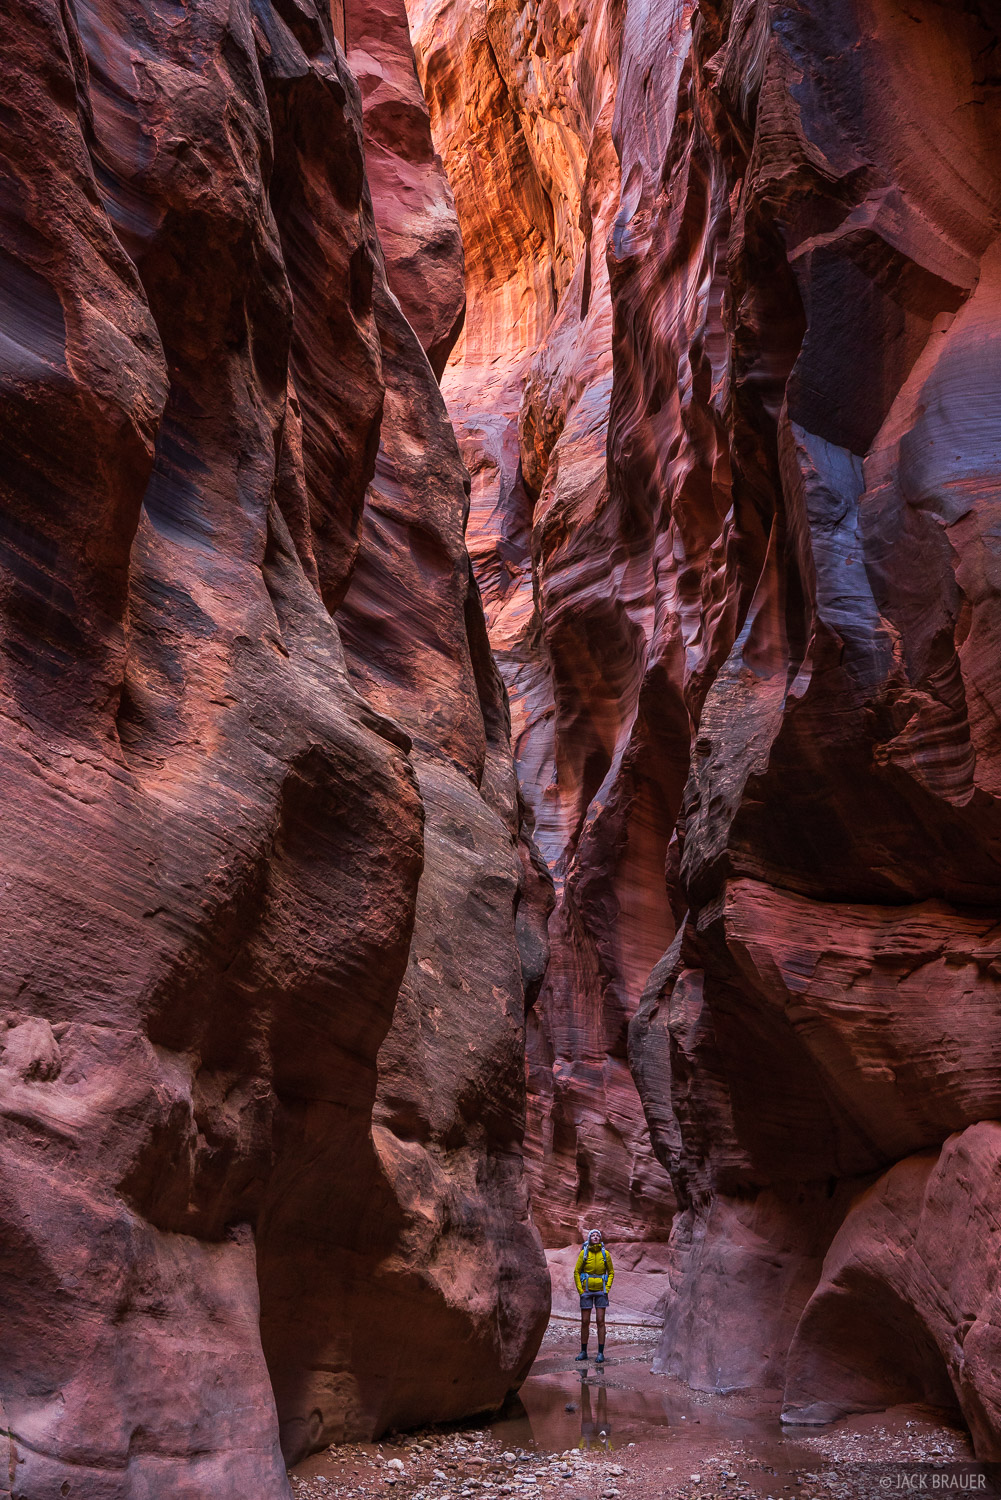 Buckskin Gulch, Paria Canyon-Vermilion Cliffs Wilderness, Utah, Vermilion Cliffs National Monument, hiking, photo